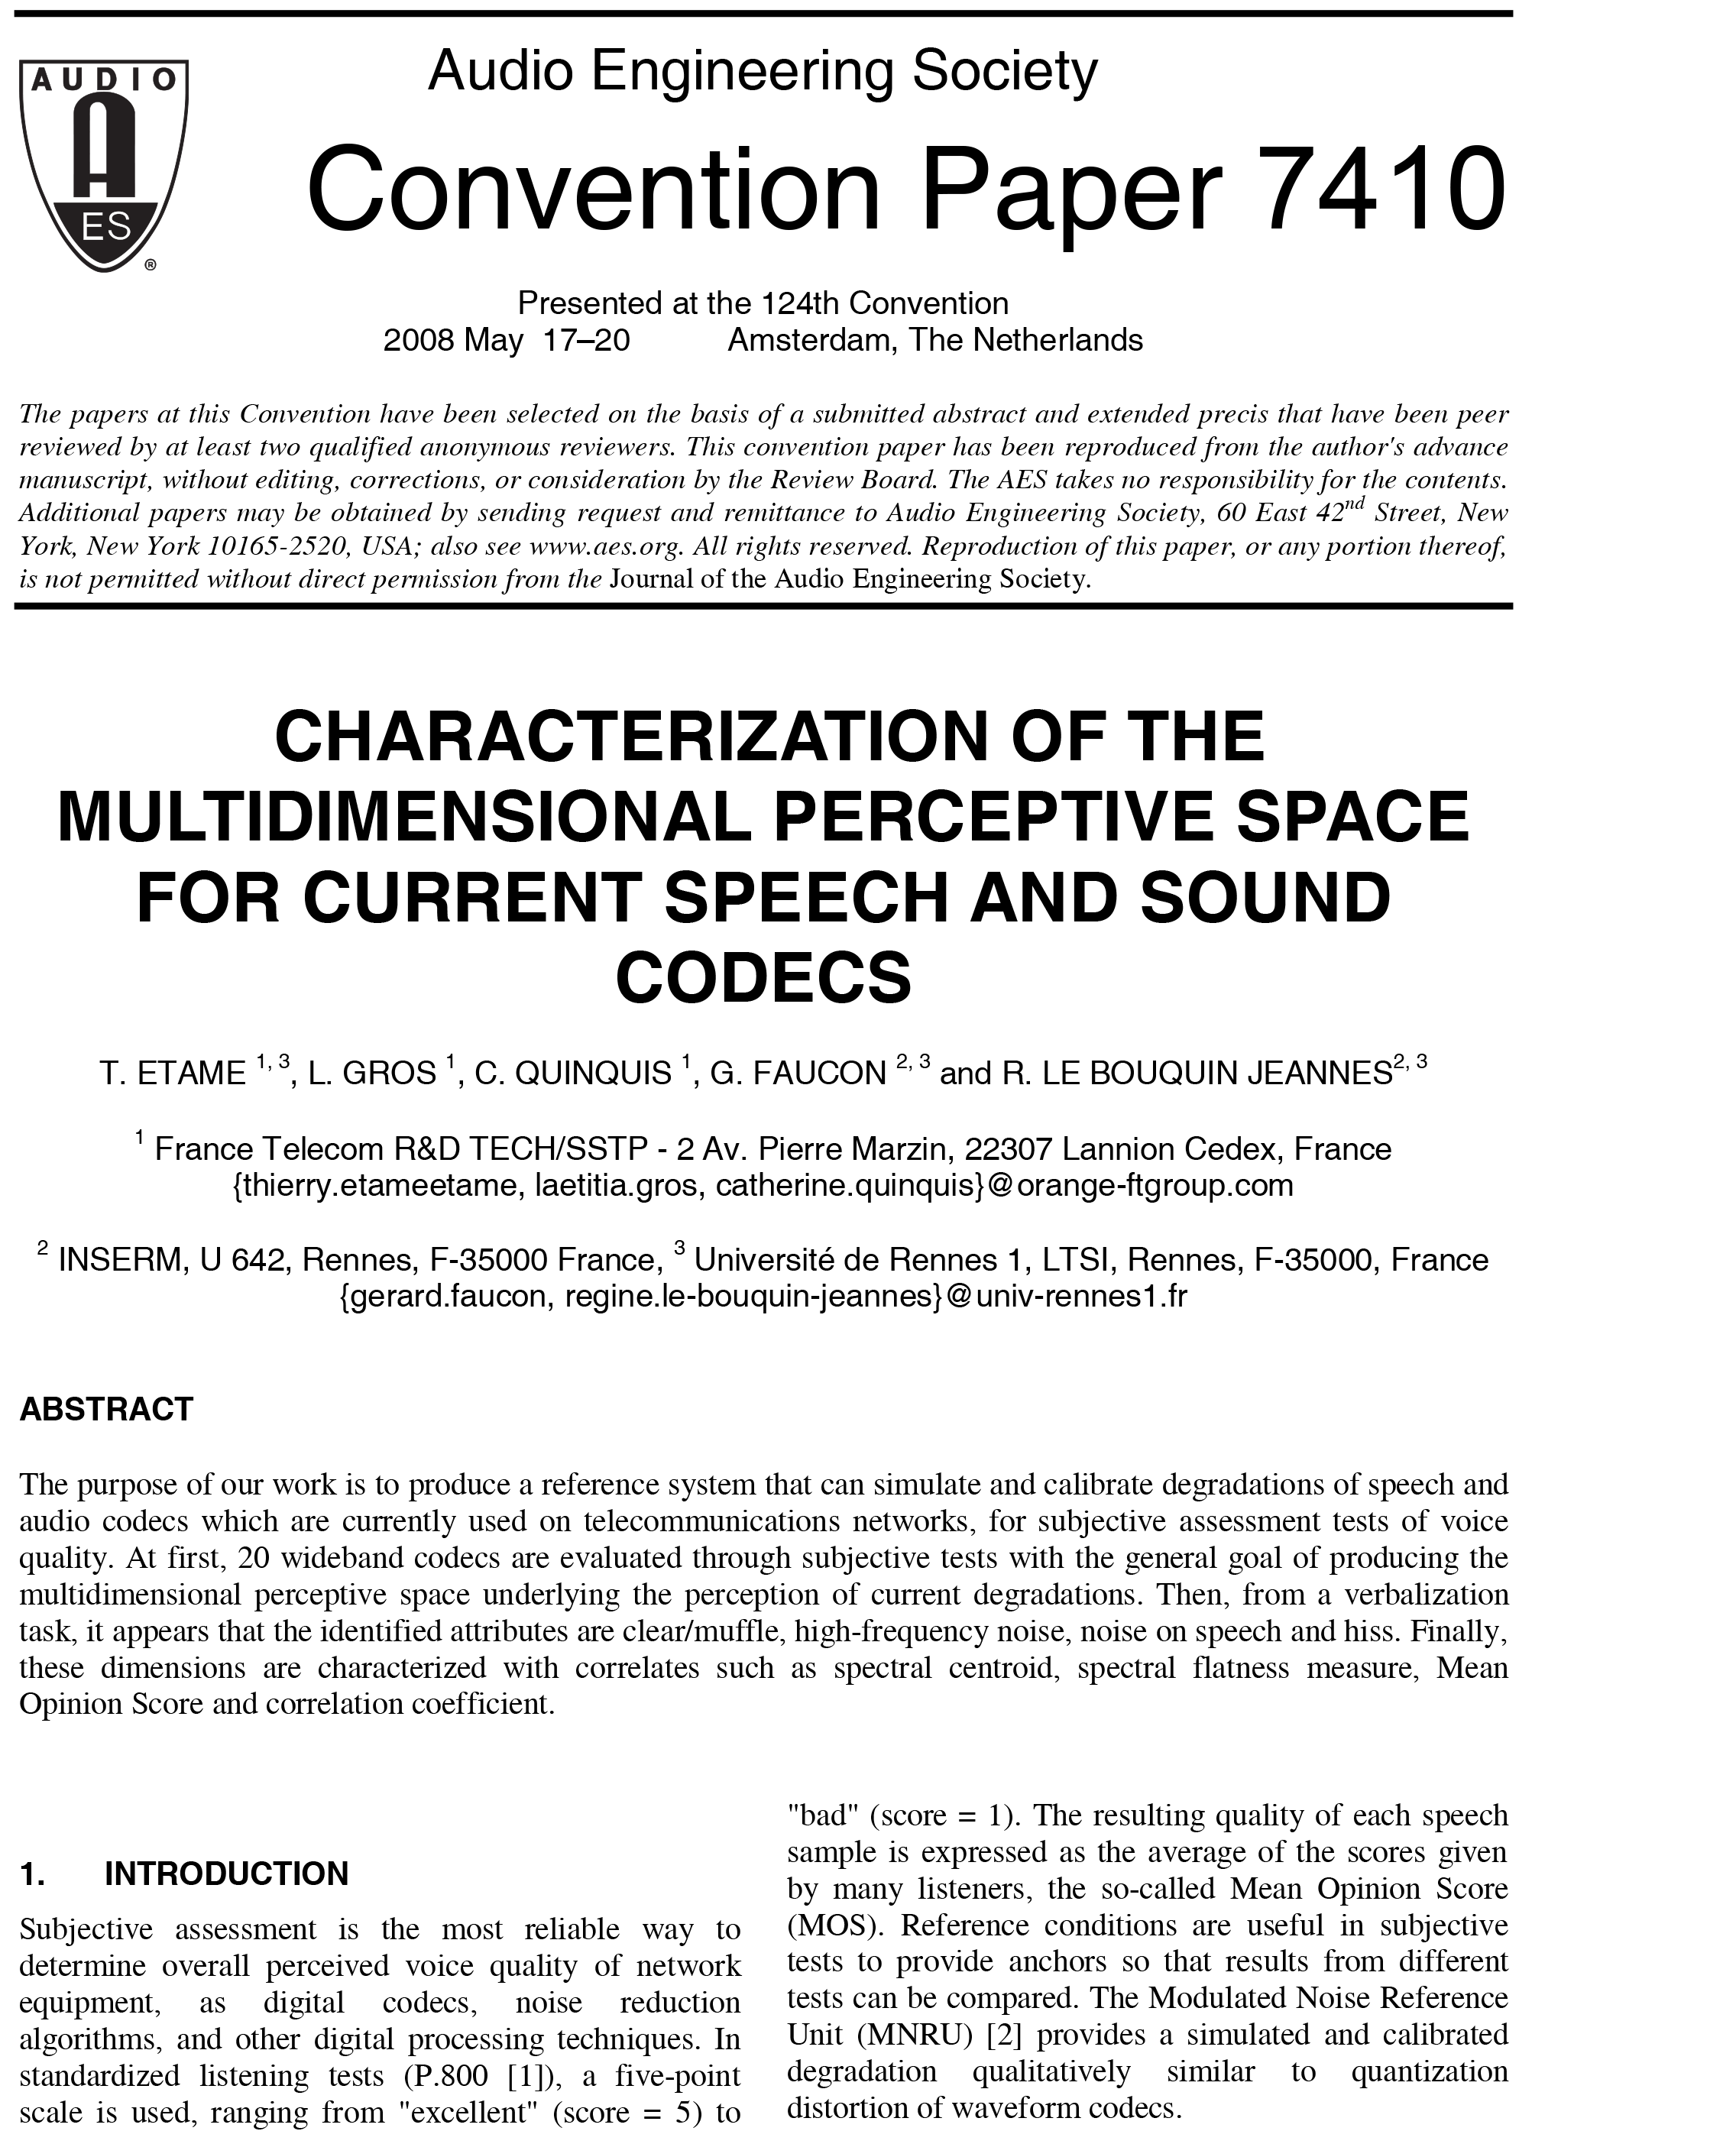 aes e library characterization of the multidimensional perceptive space for current speech and sound codecs